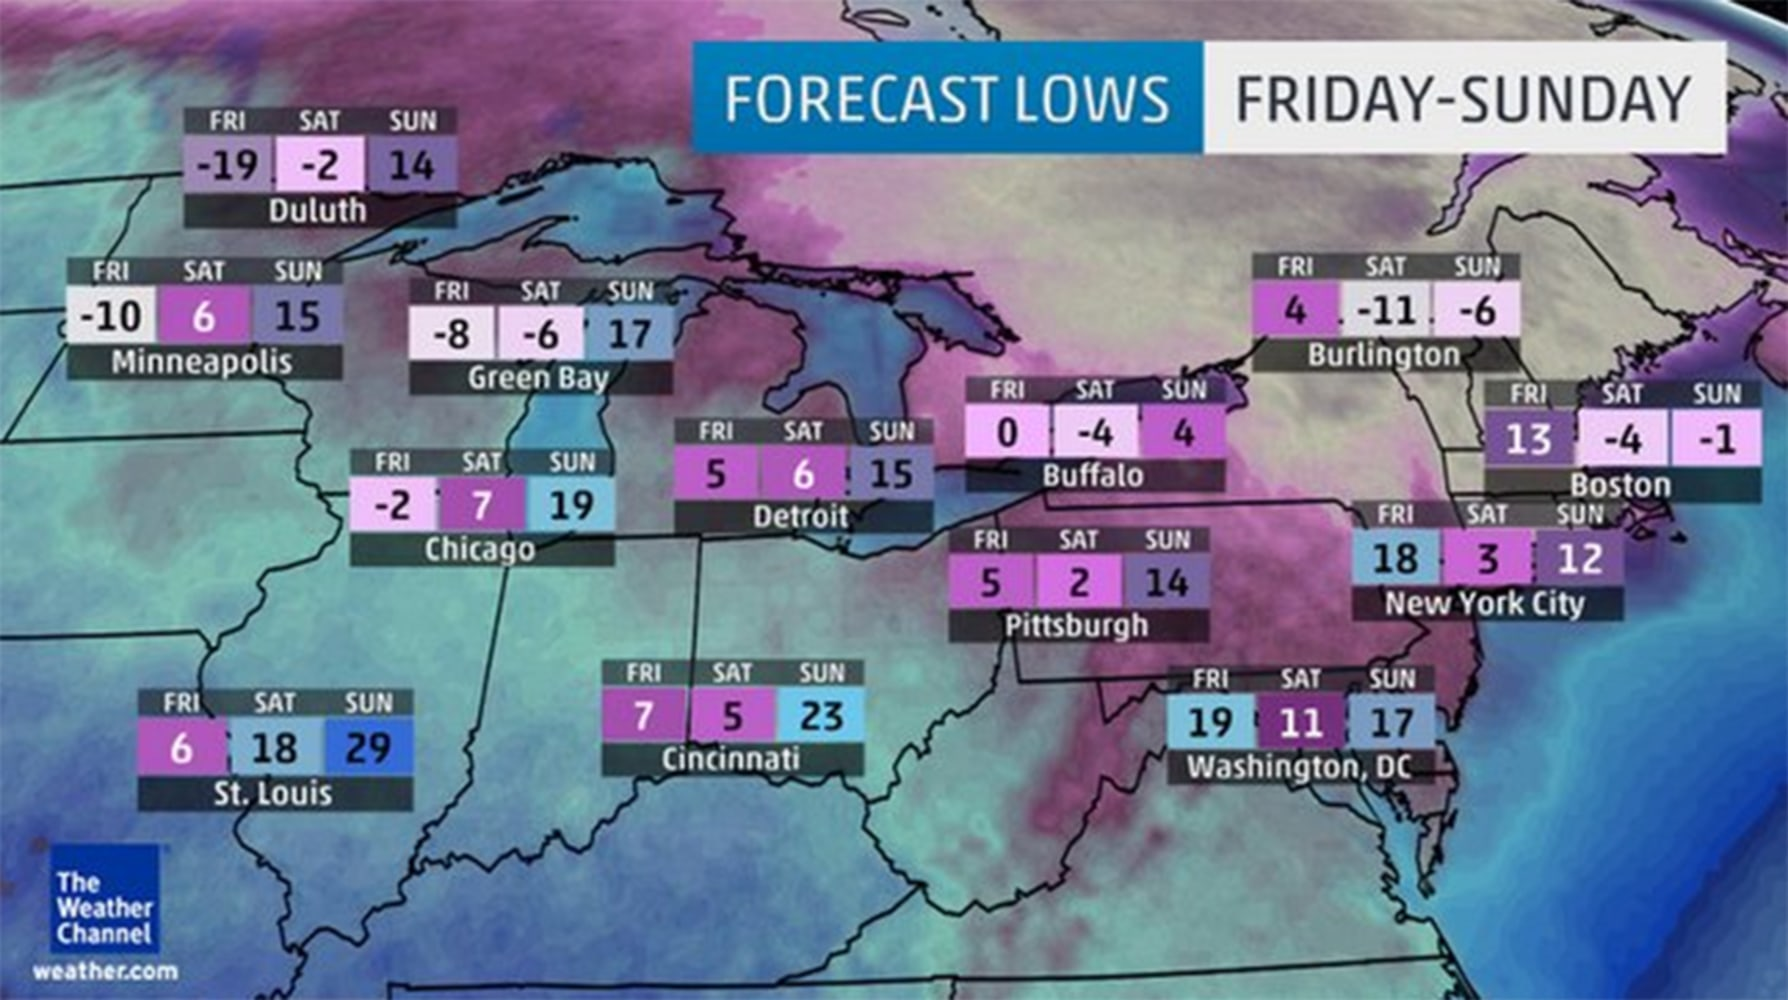 Weather Channel Forecast : Polar vortex to bring coldest air for more than a decade